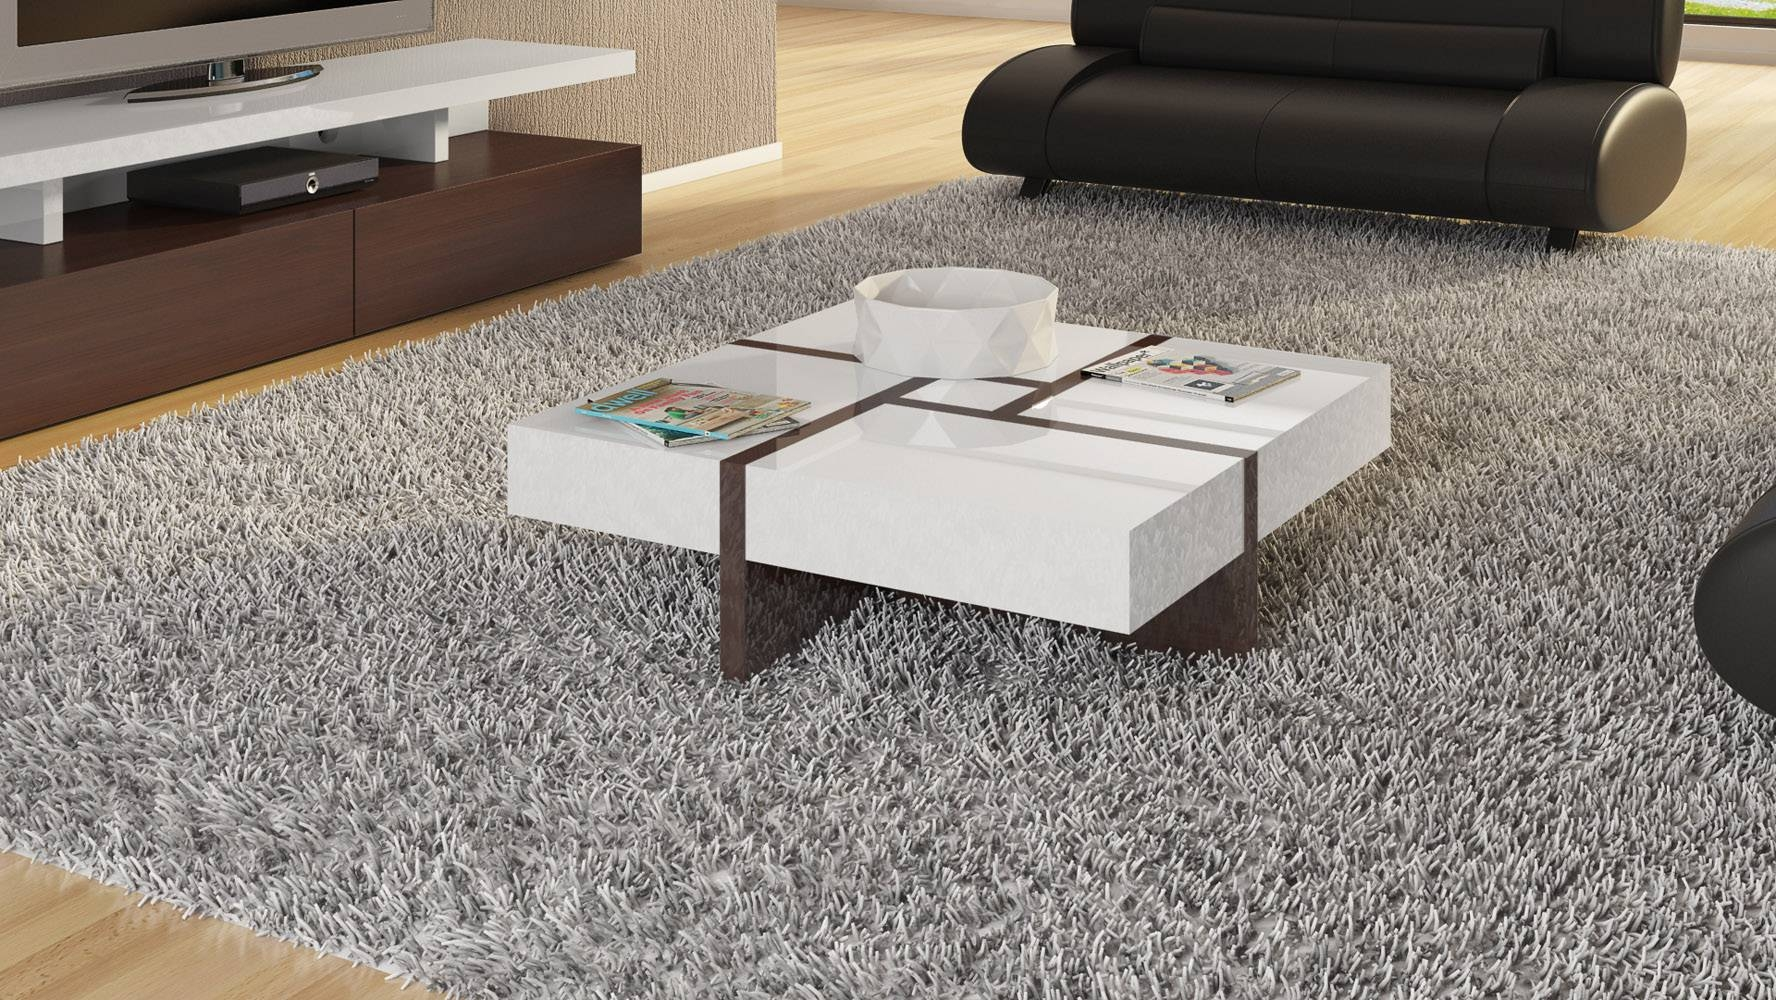 Mcintosh High Gloss Coffee Table With Storage – White Square For White Coffee Tables With Storage (View 18 of 30)